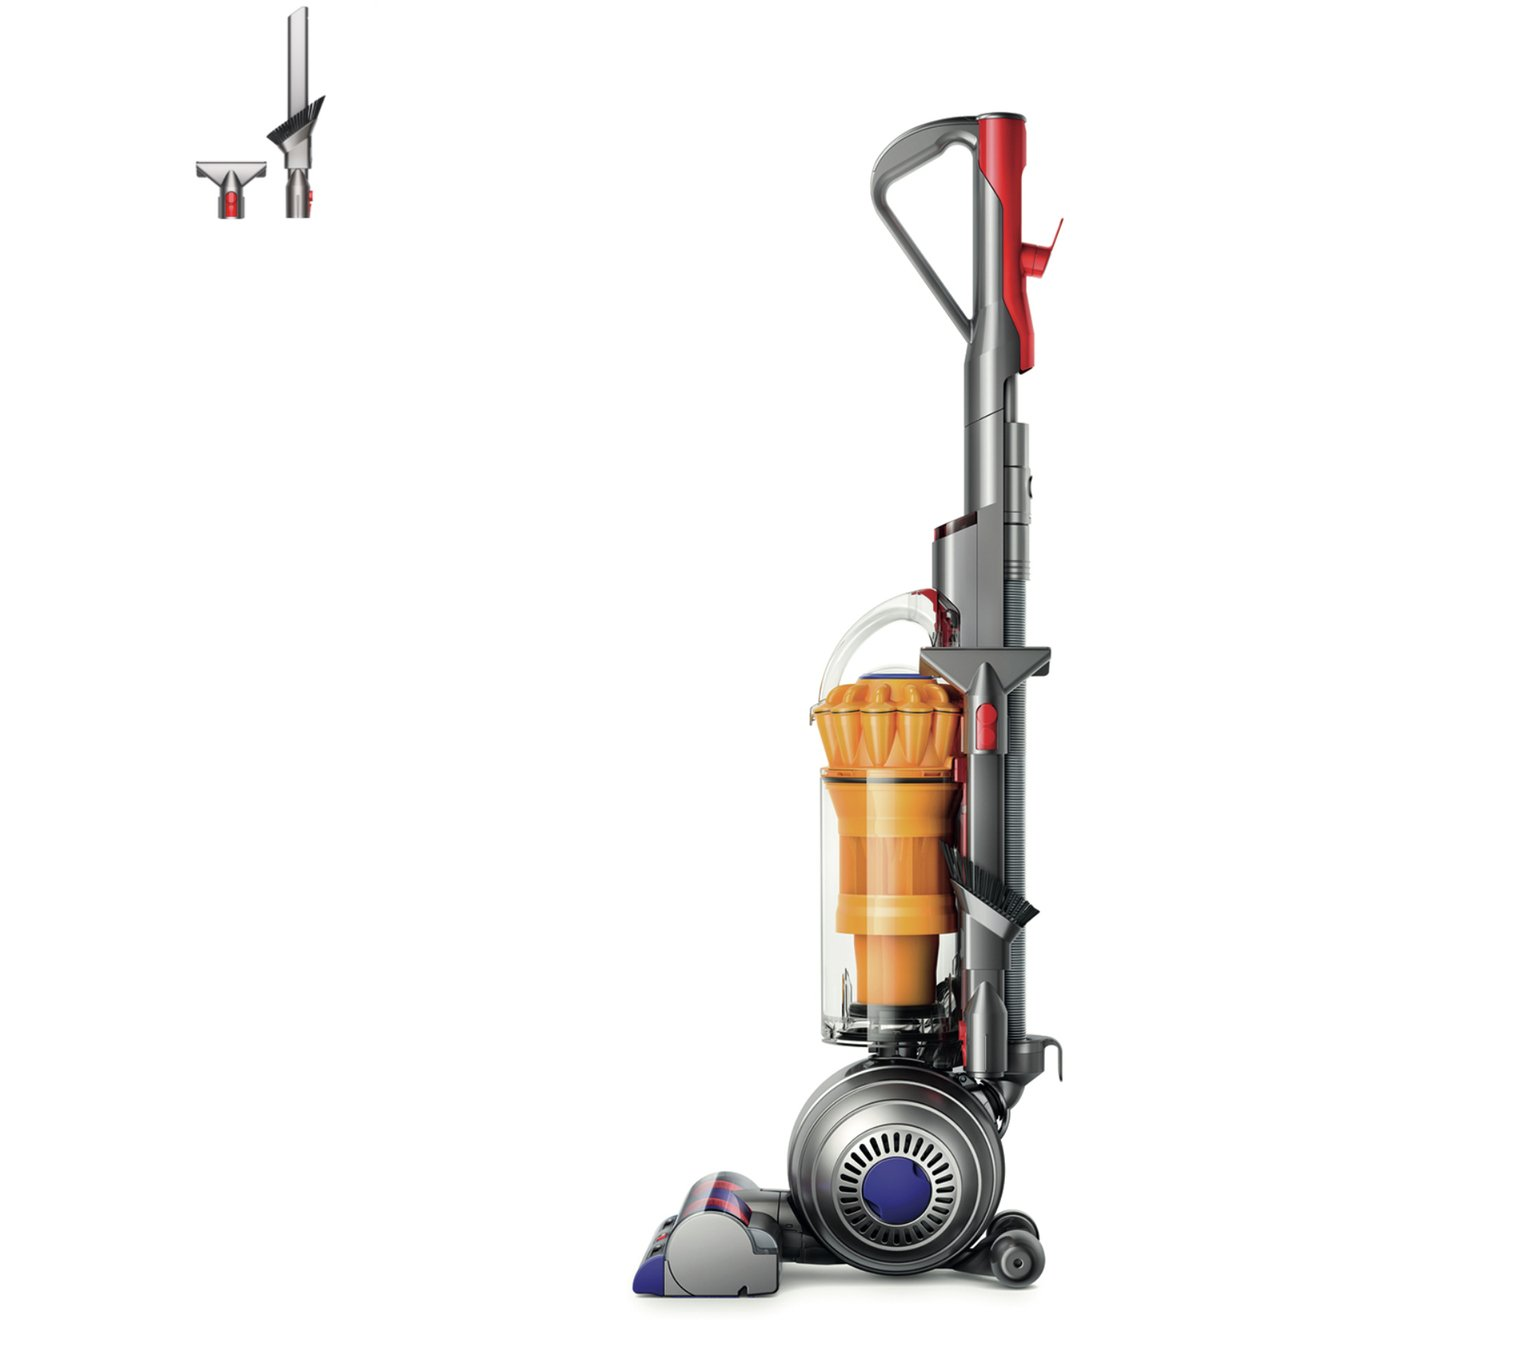 dyson light ball multifloor bagless upright vacuum cleaner